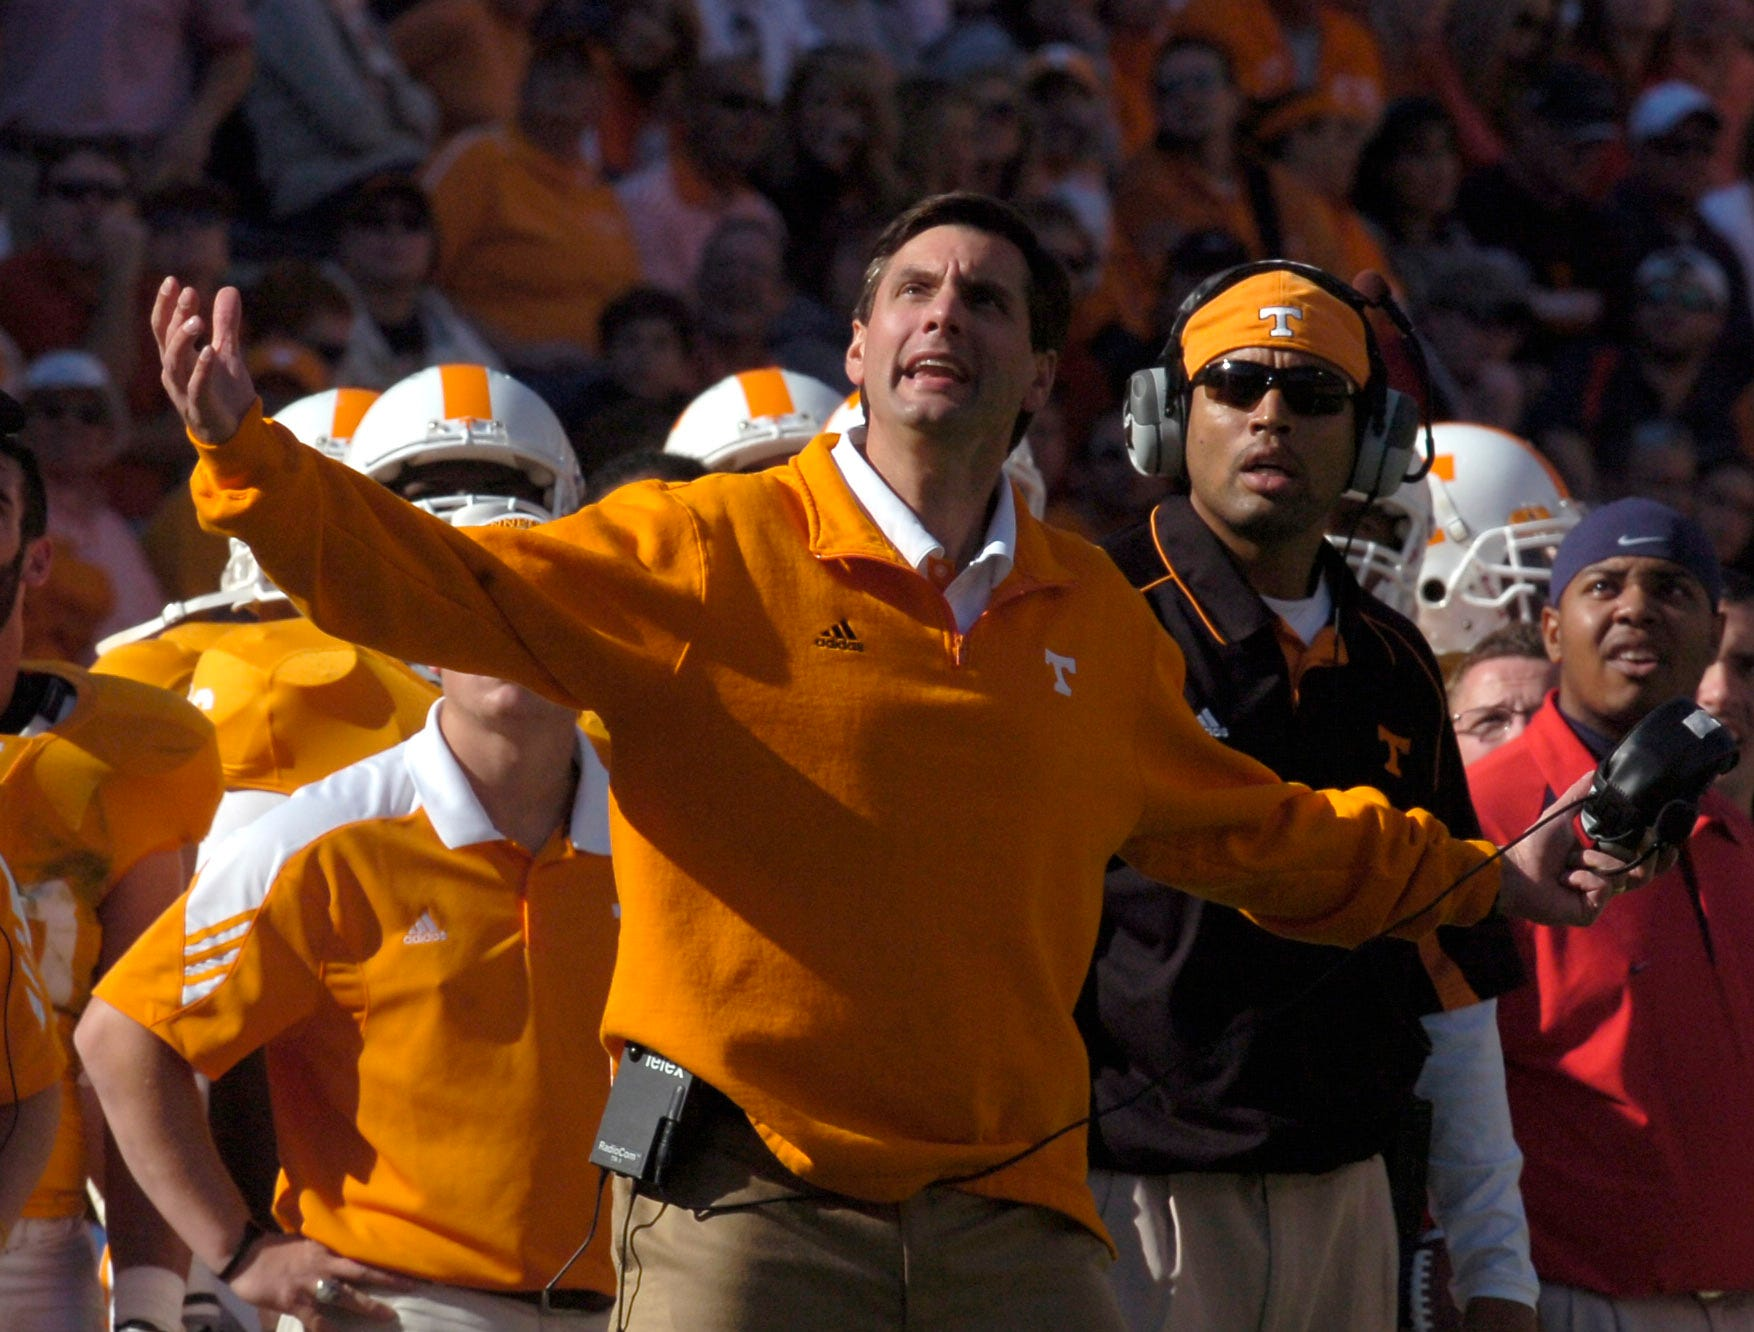 Tennessee head coach Derek Dooley reacts to a call during the game against Ole Miss at Neyland Stadium on Saturday, Nov. 13, 2010. Tennessee won the game 52-14.